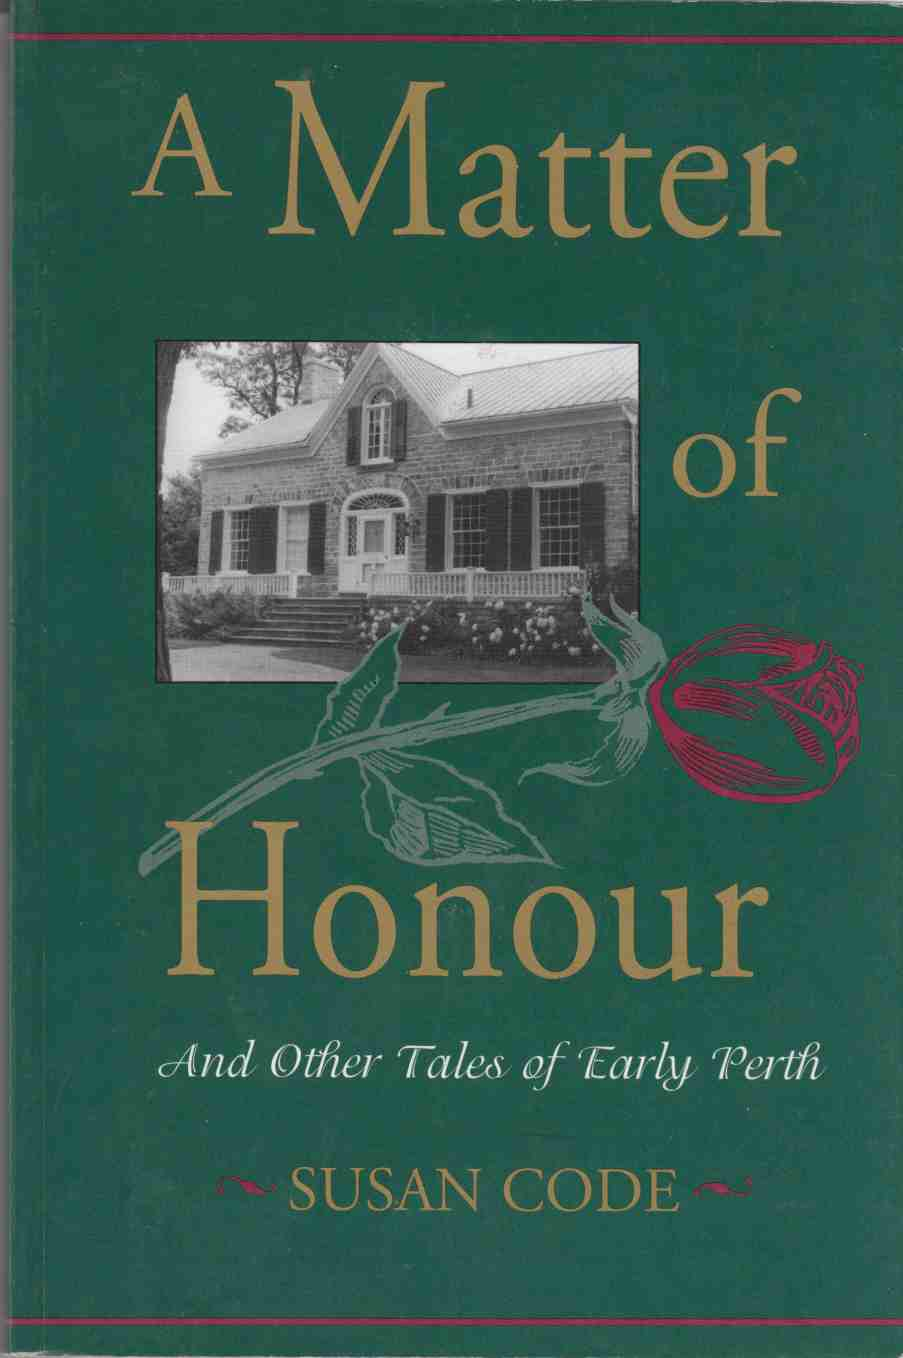 Image for A Matter of Honour And Other Tales of Early Perth